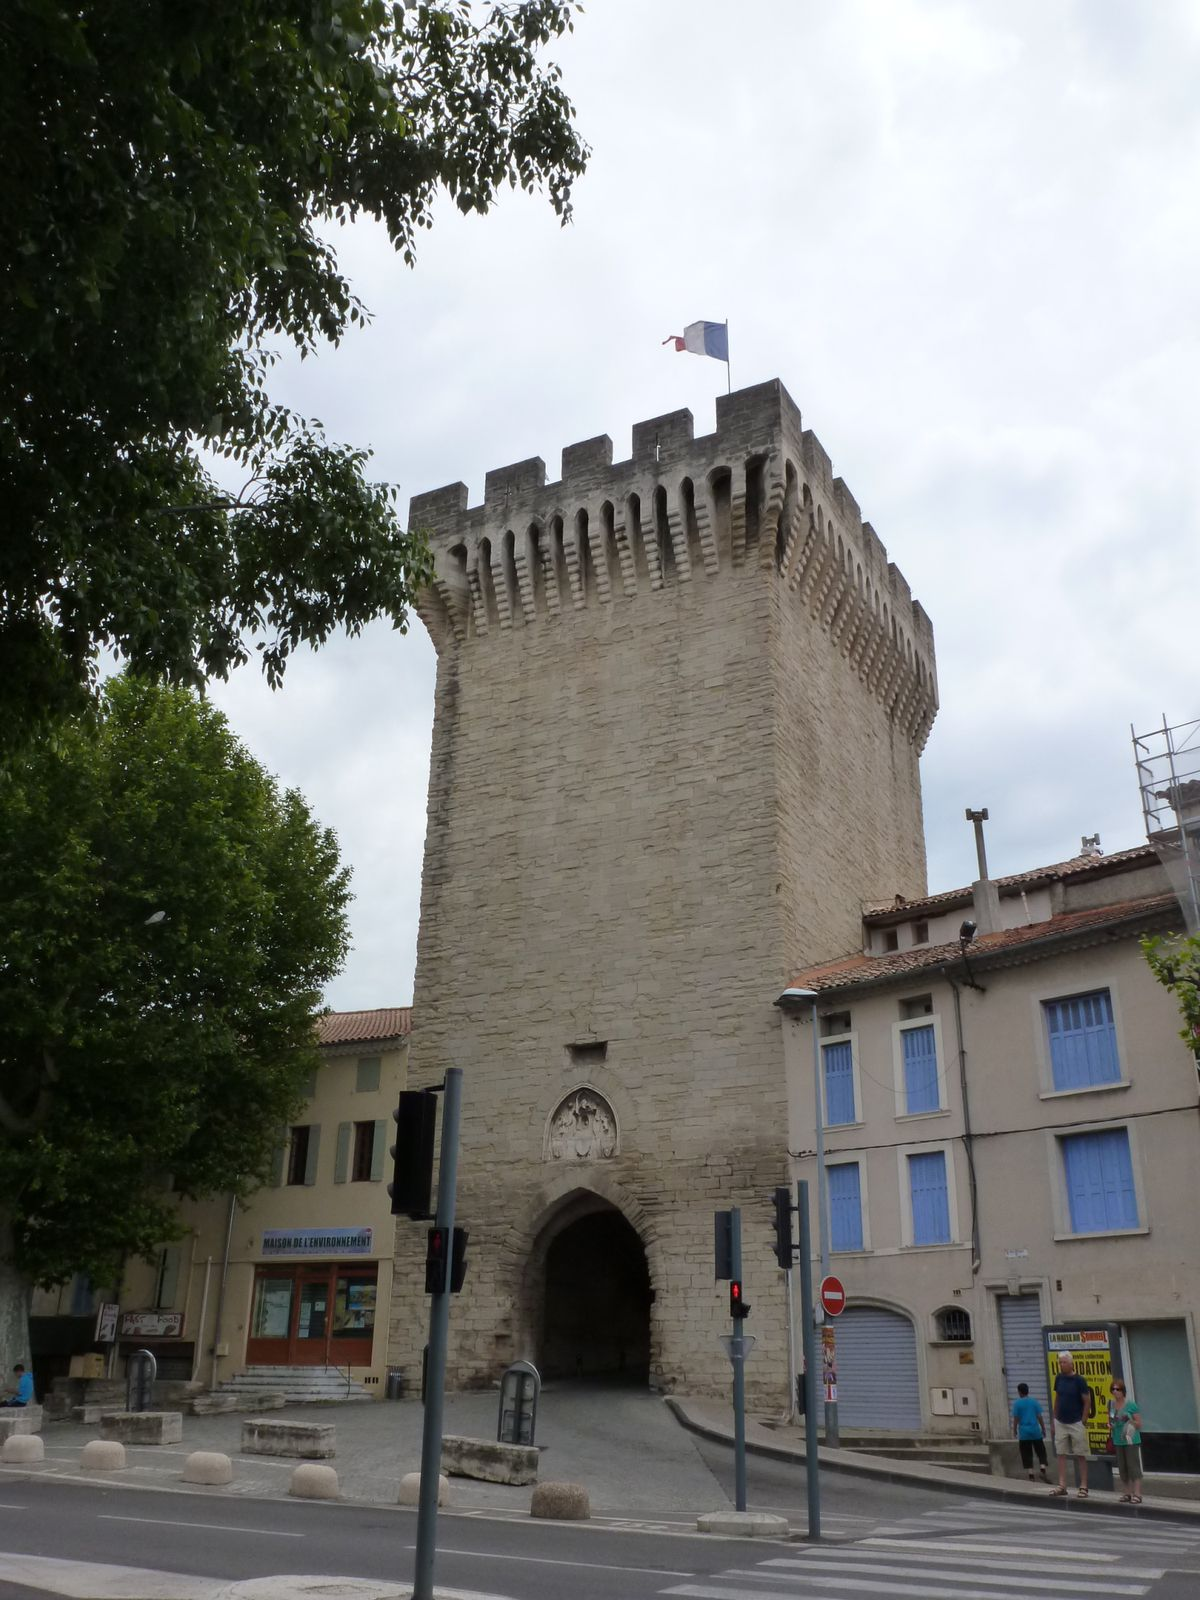 Back in Carpentras - the old town...